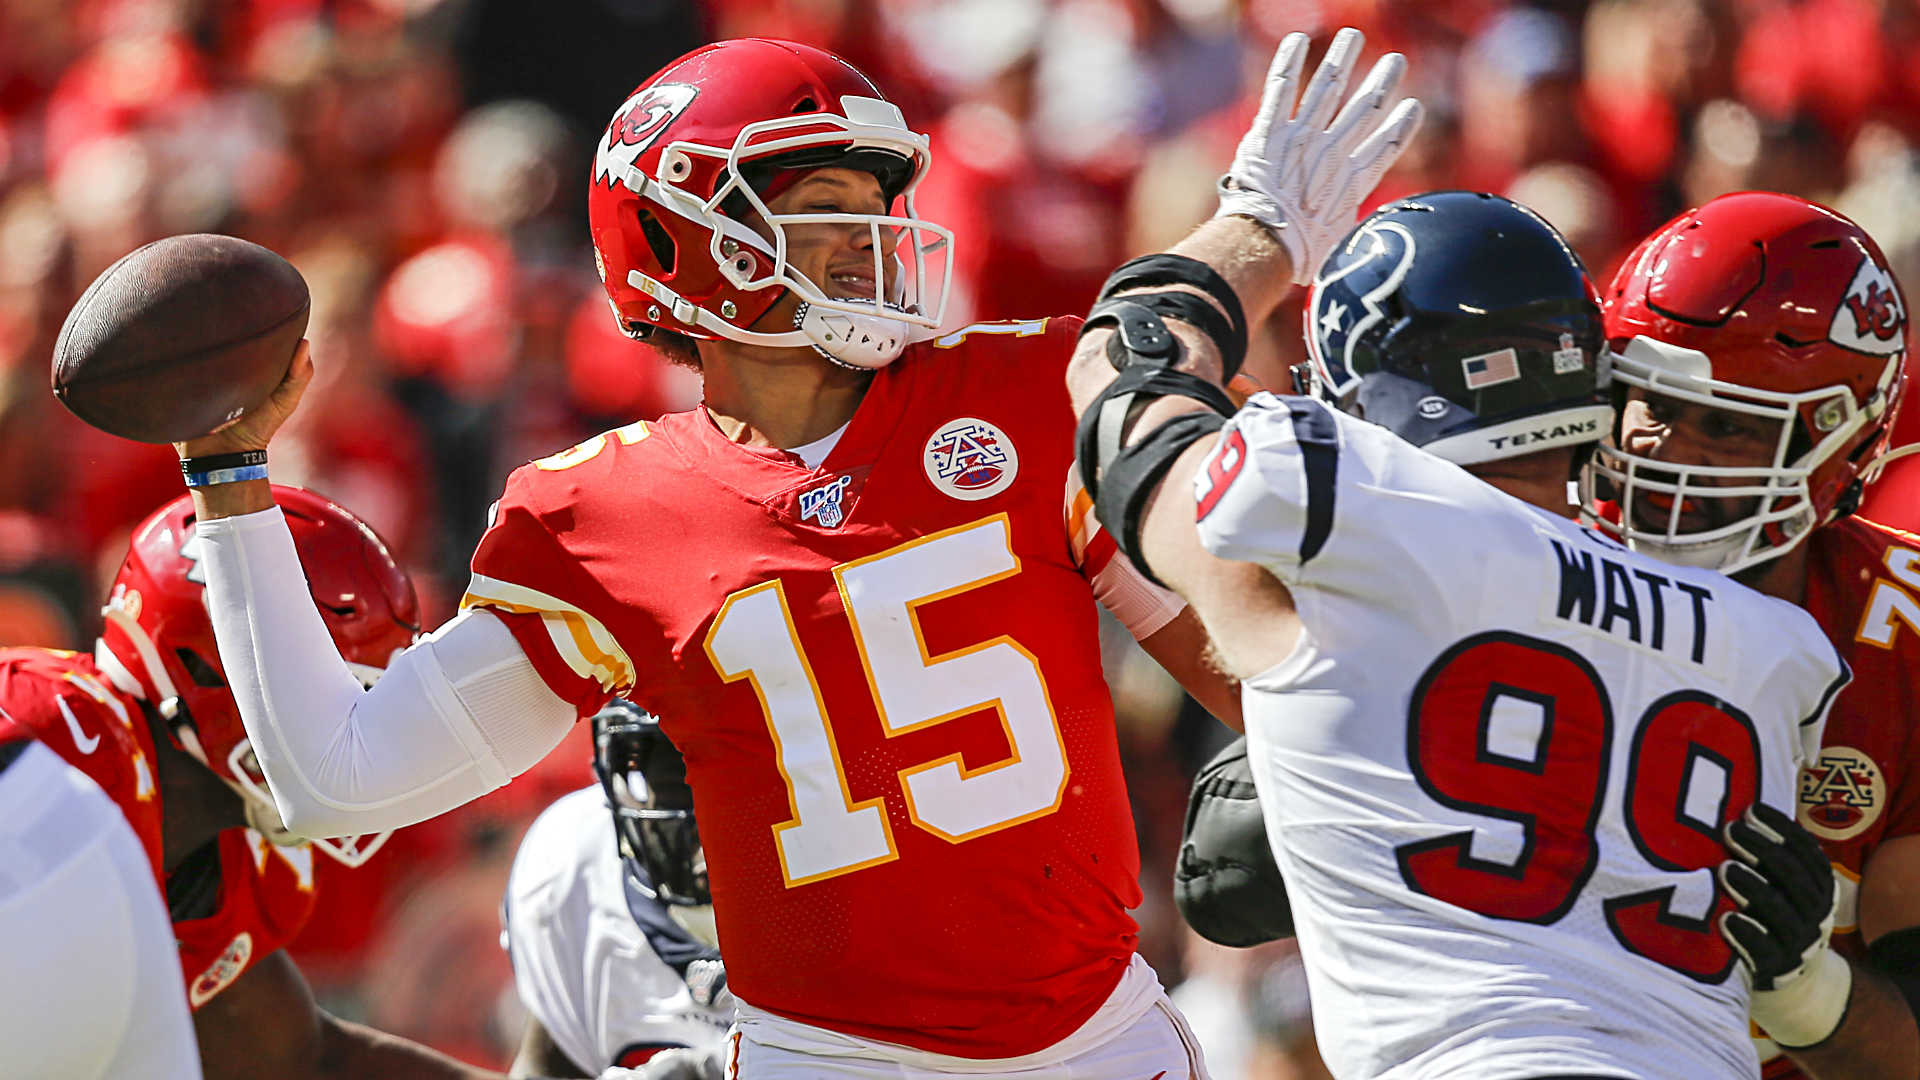 Patrick Mahomes, Chiefs suddenly in danger of letting Patriots run away with AFC